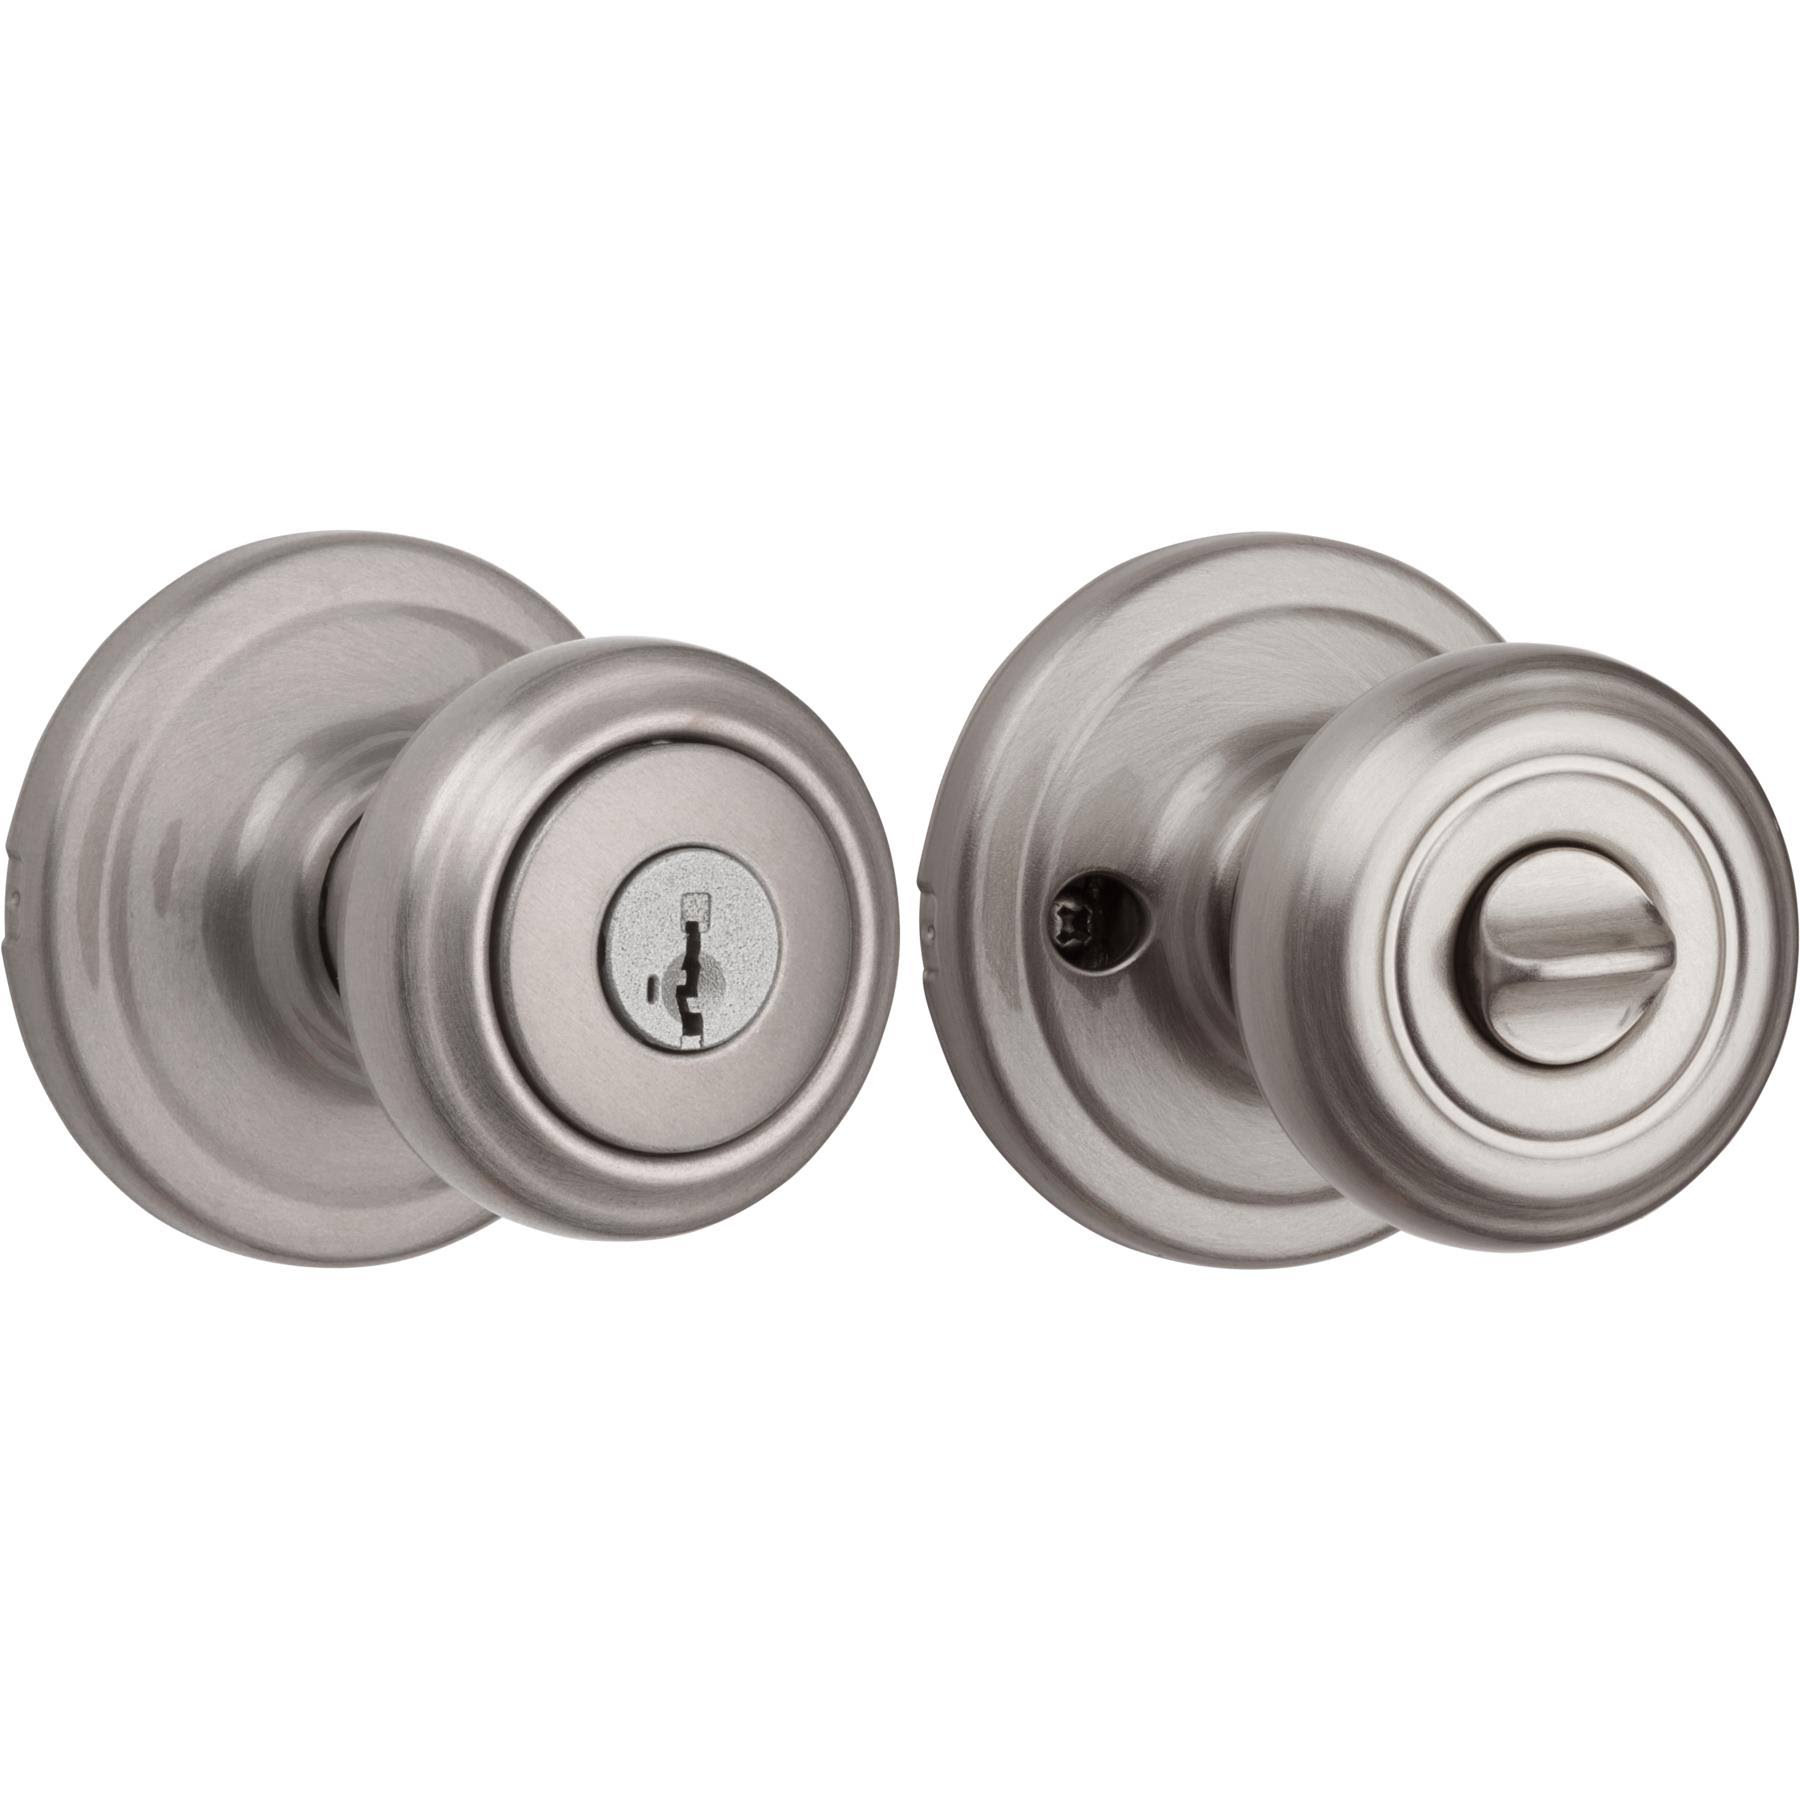 Kwikset Signature Series Cameron Entry Knob